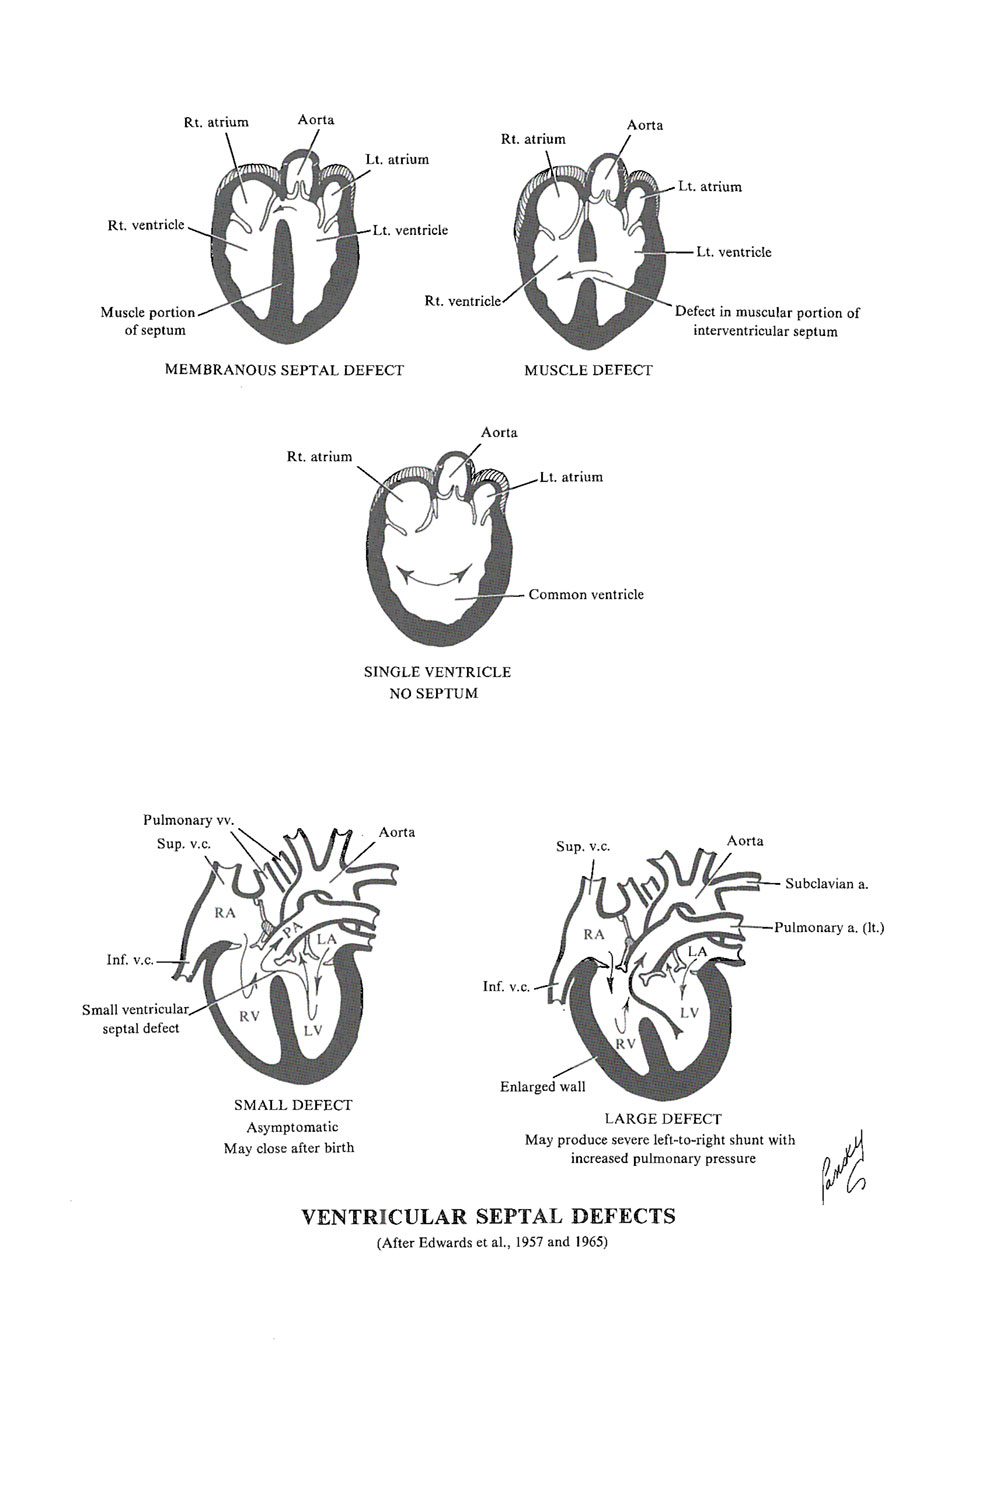 malformations of the heart and  great vessels: image #1